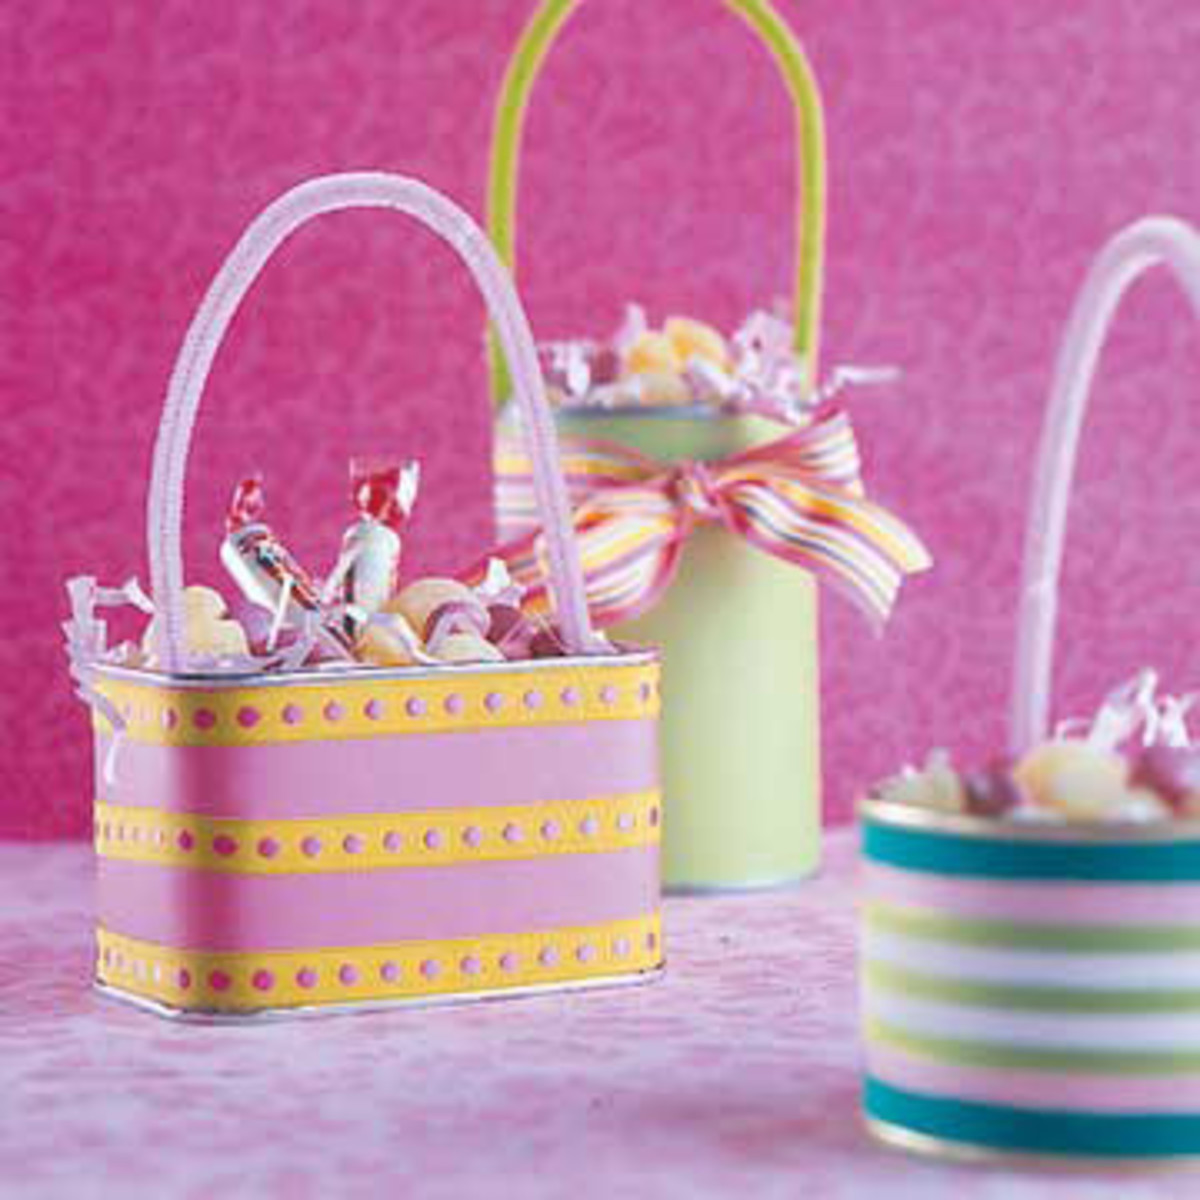 Decorated cans and tins make excellent Easter baskets.